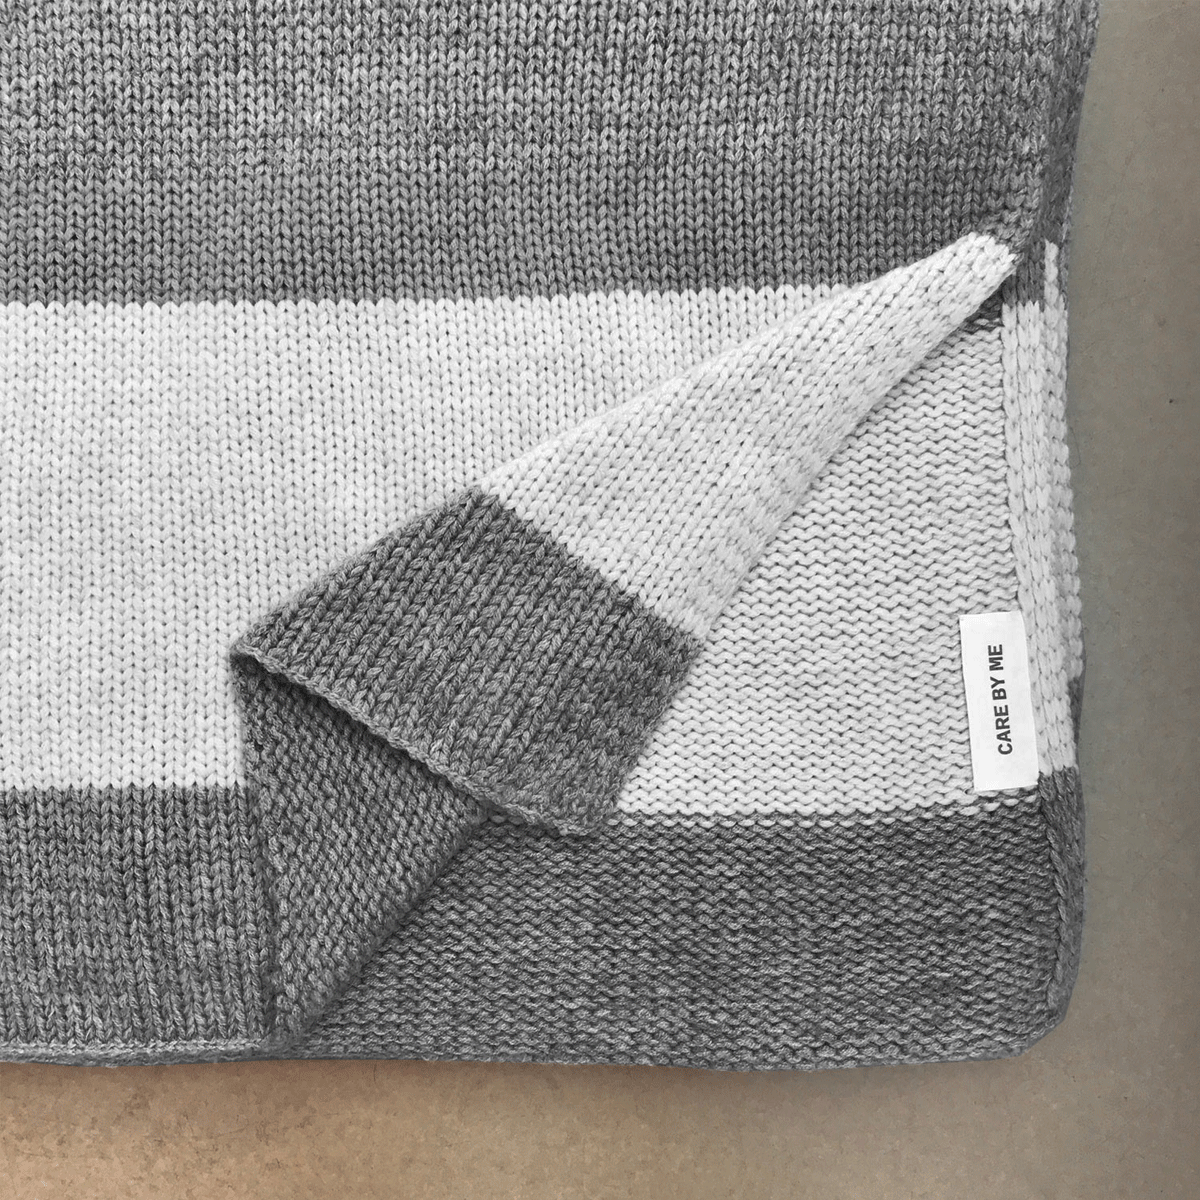 Wolldecke Grau Care By Me Plaid Aus Cashmere Wolle